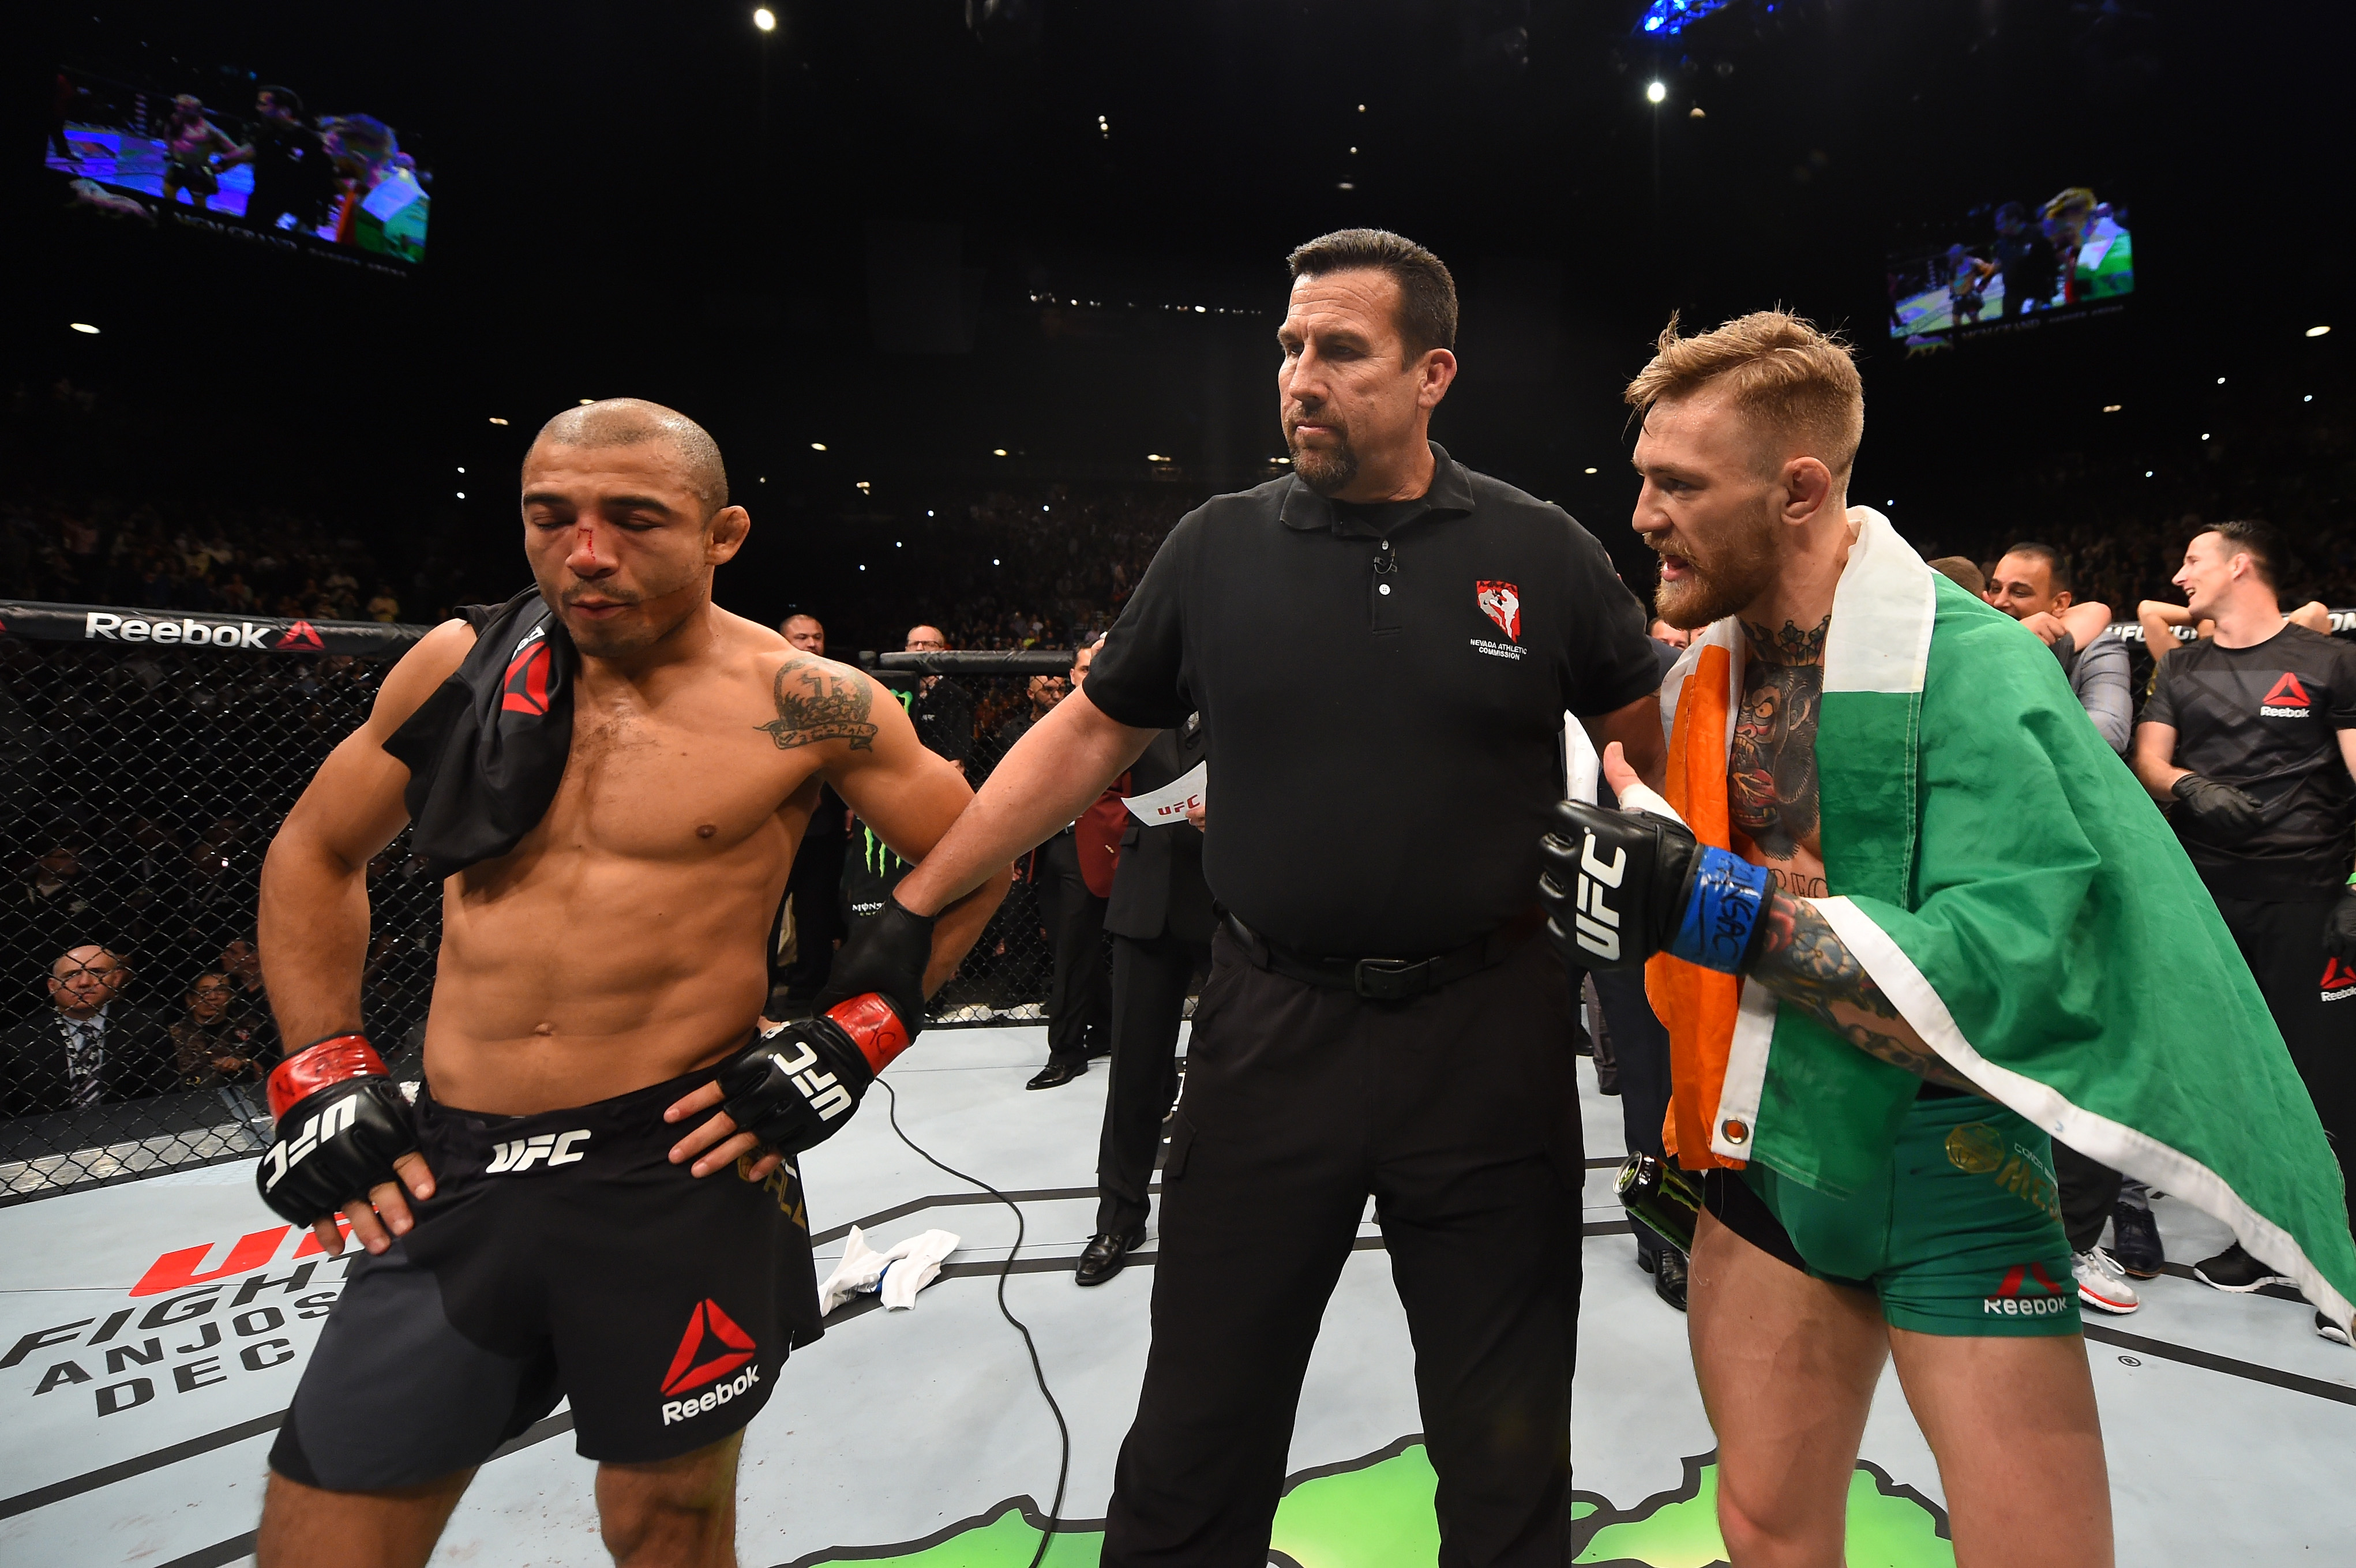 Jose Aldo as featherweight champion is 'ridiculous', says Conor McGregor's coach John Kavanagh